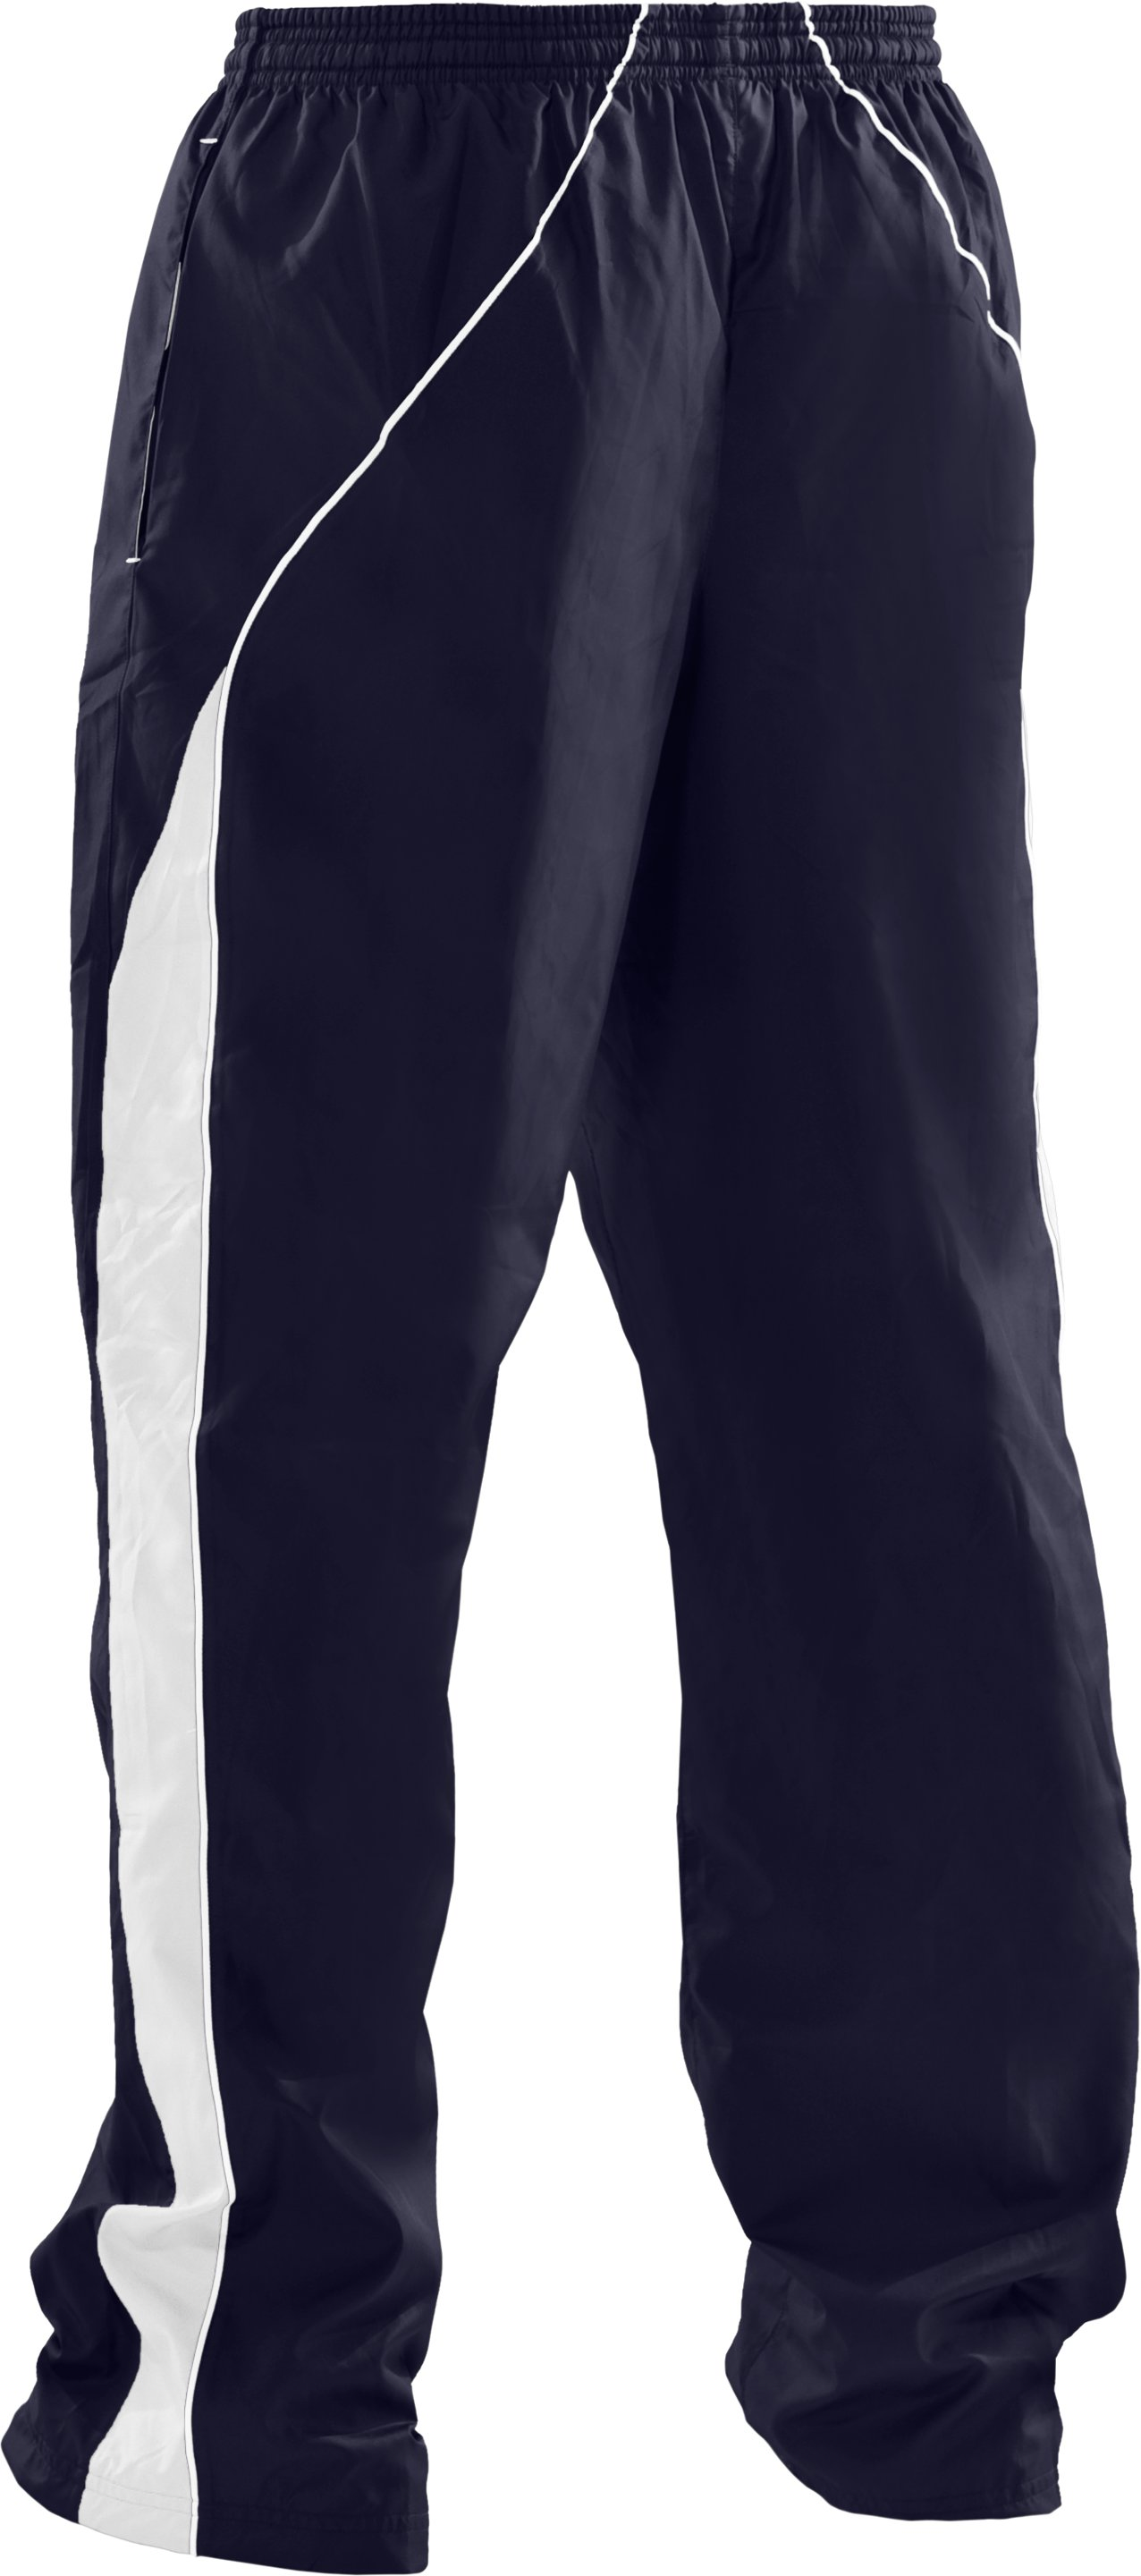 Men's UA Attack Woven Warm-Up Pants, Midnight Navy,